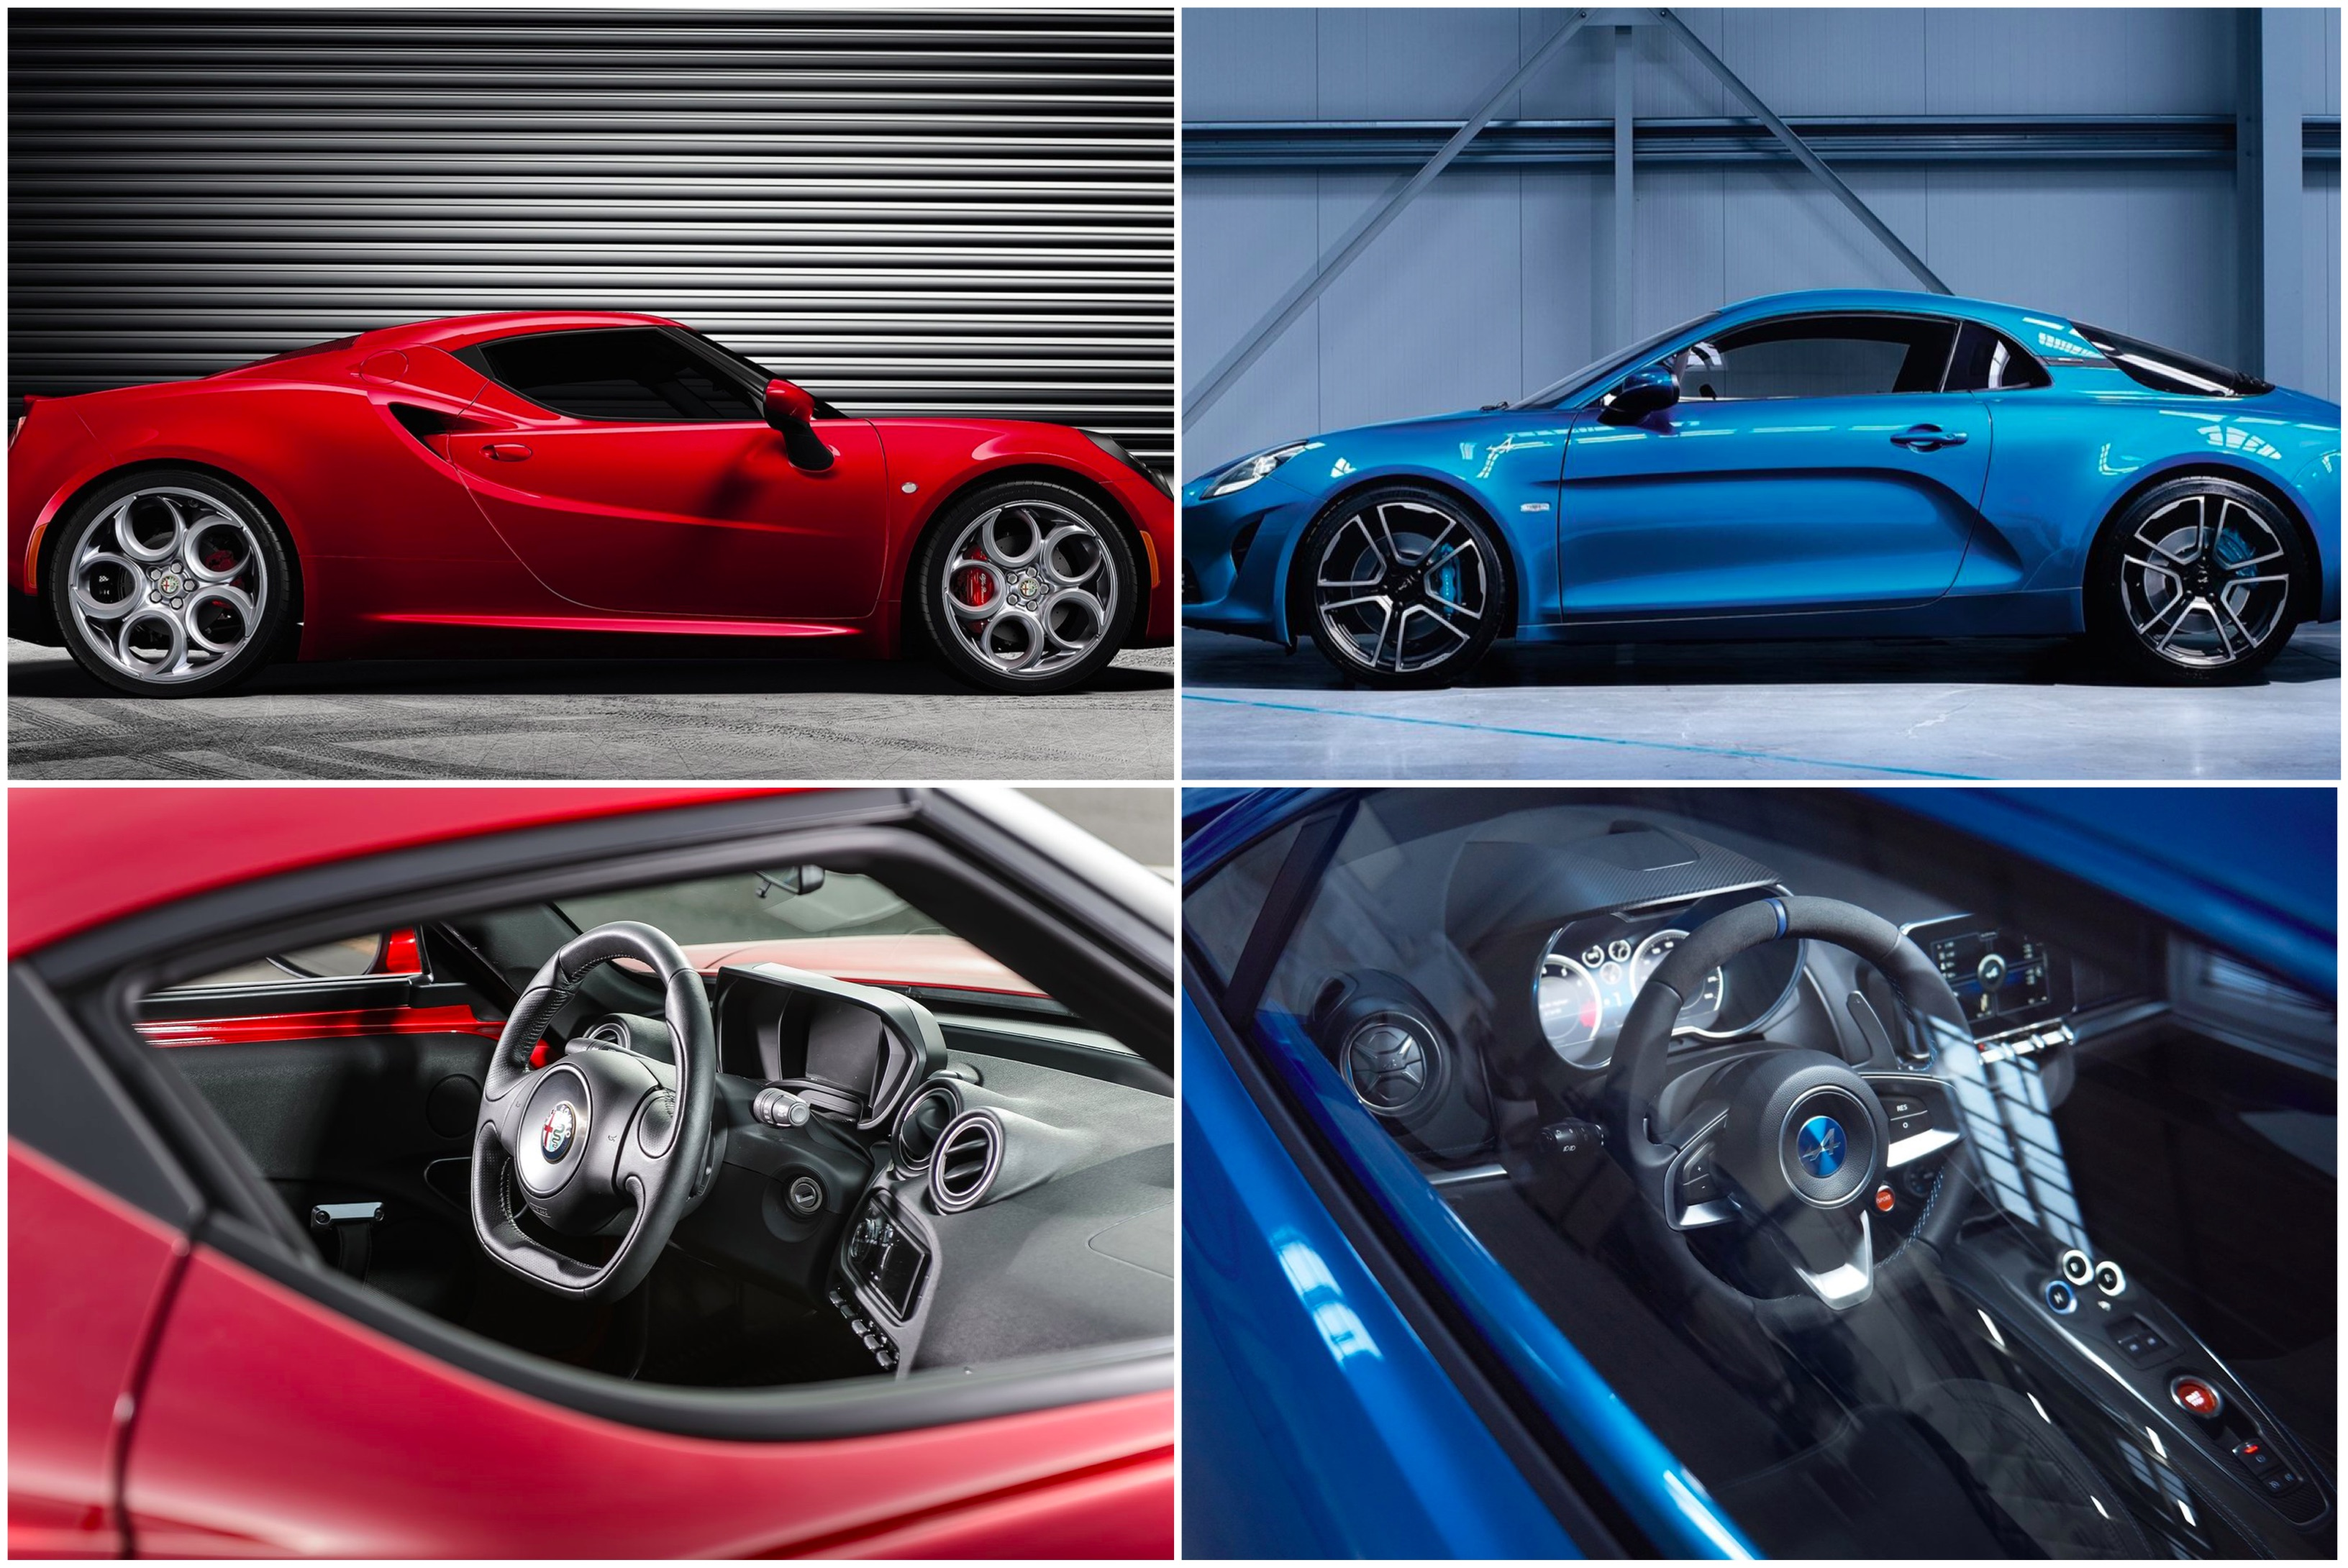 Alpine A110 l anti Alfa Romeo 4C News Panoramauto